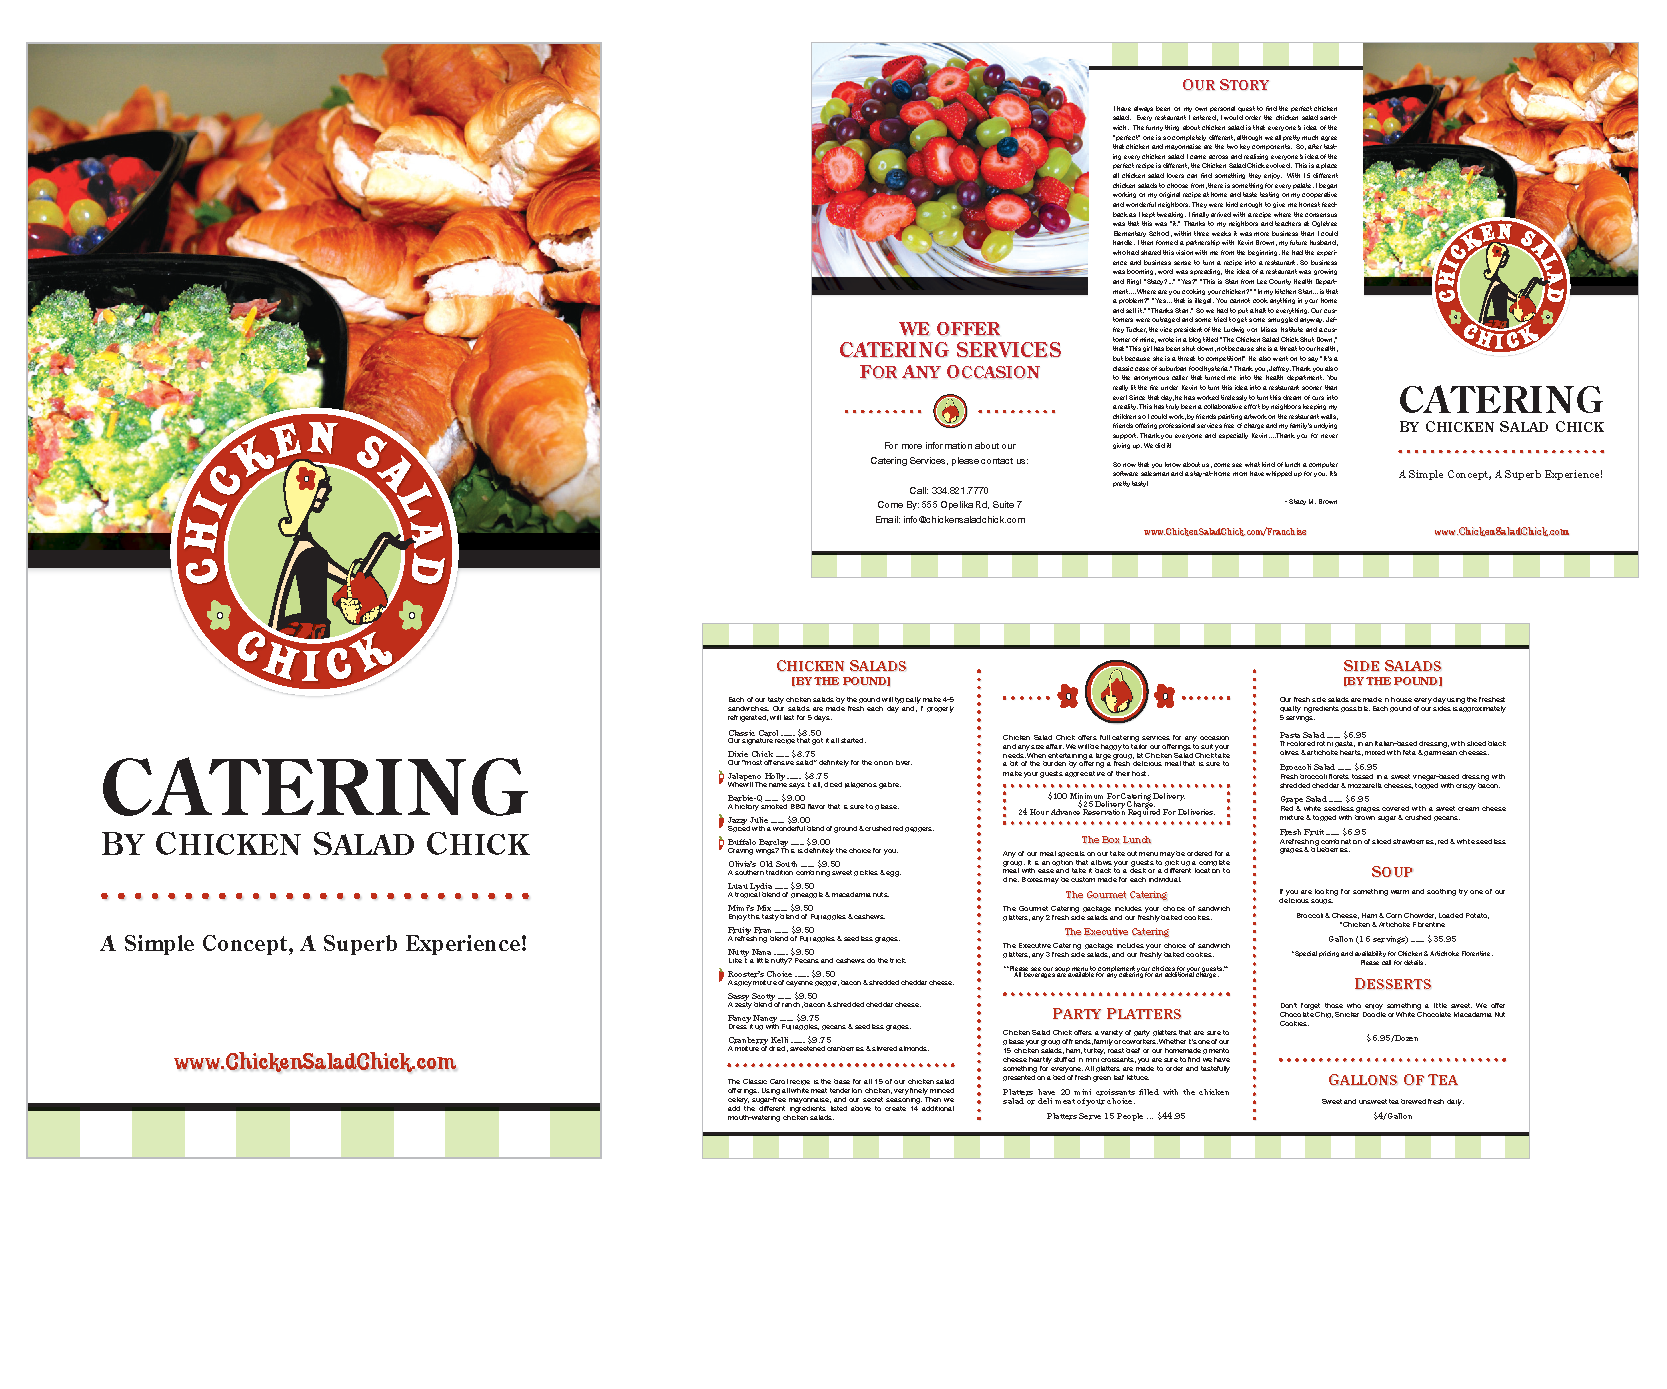 Catering Menu Design for Chicken Salad Chick